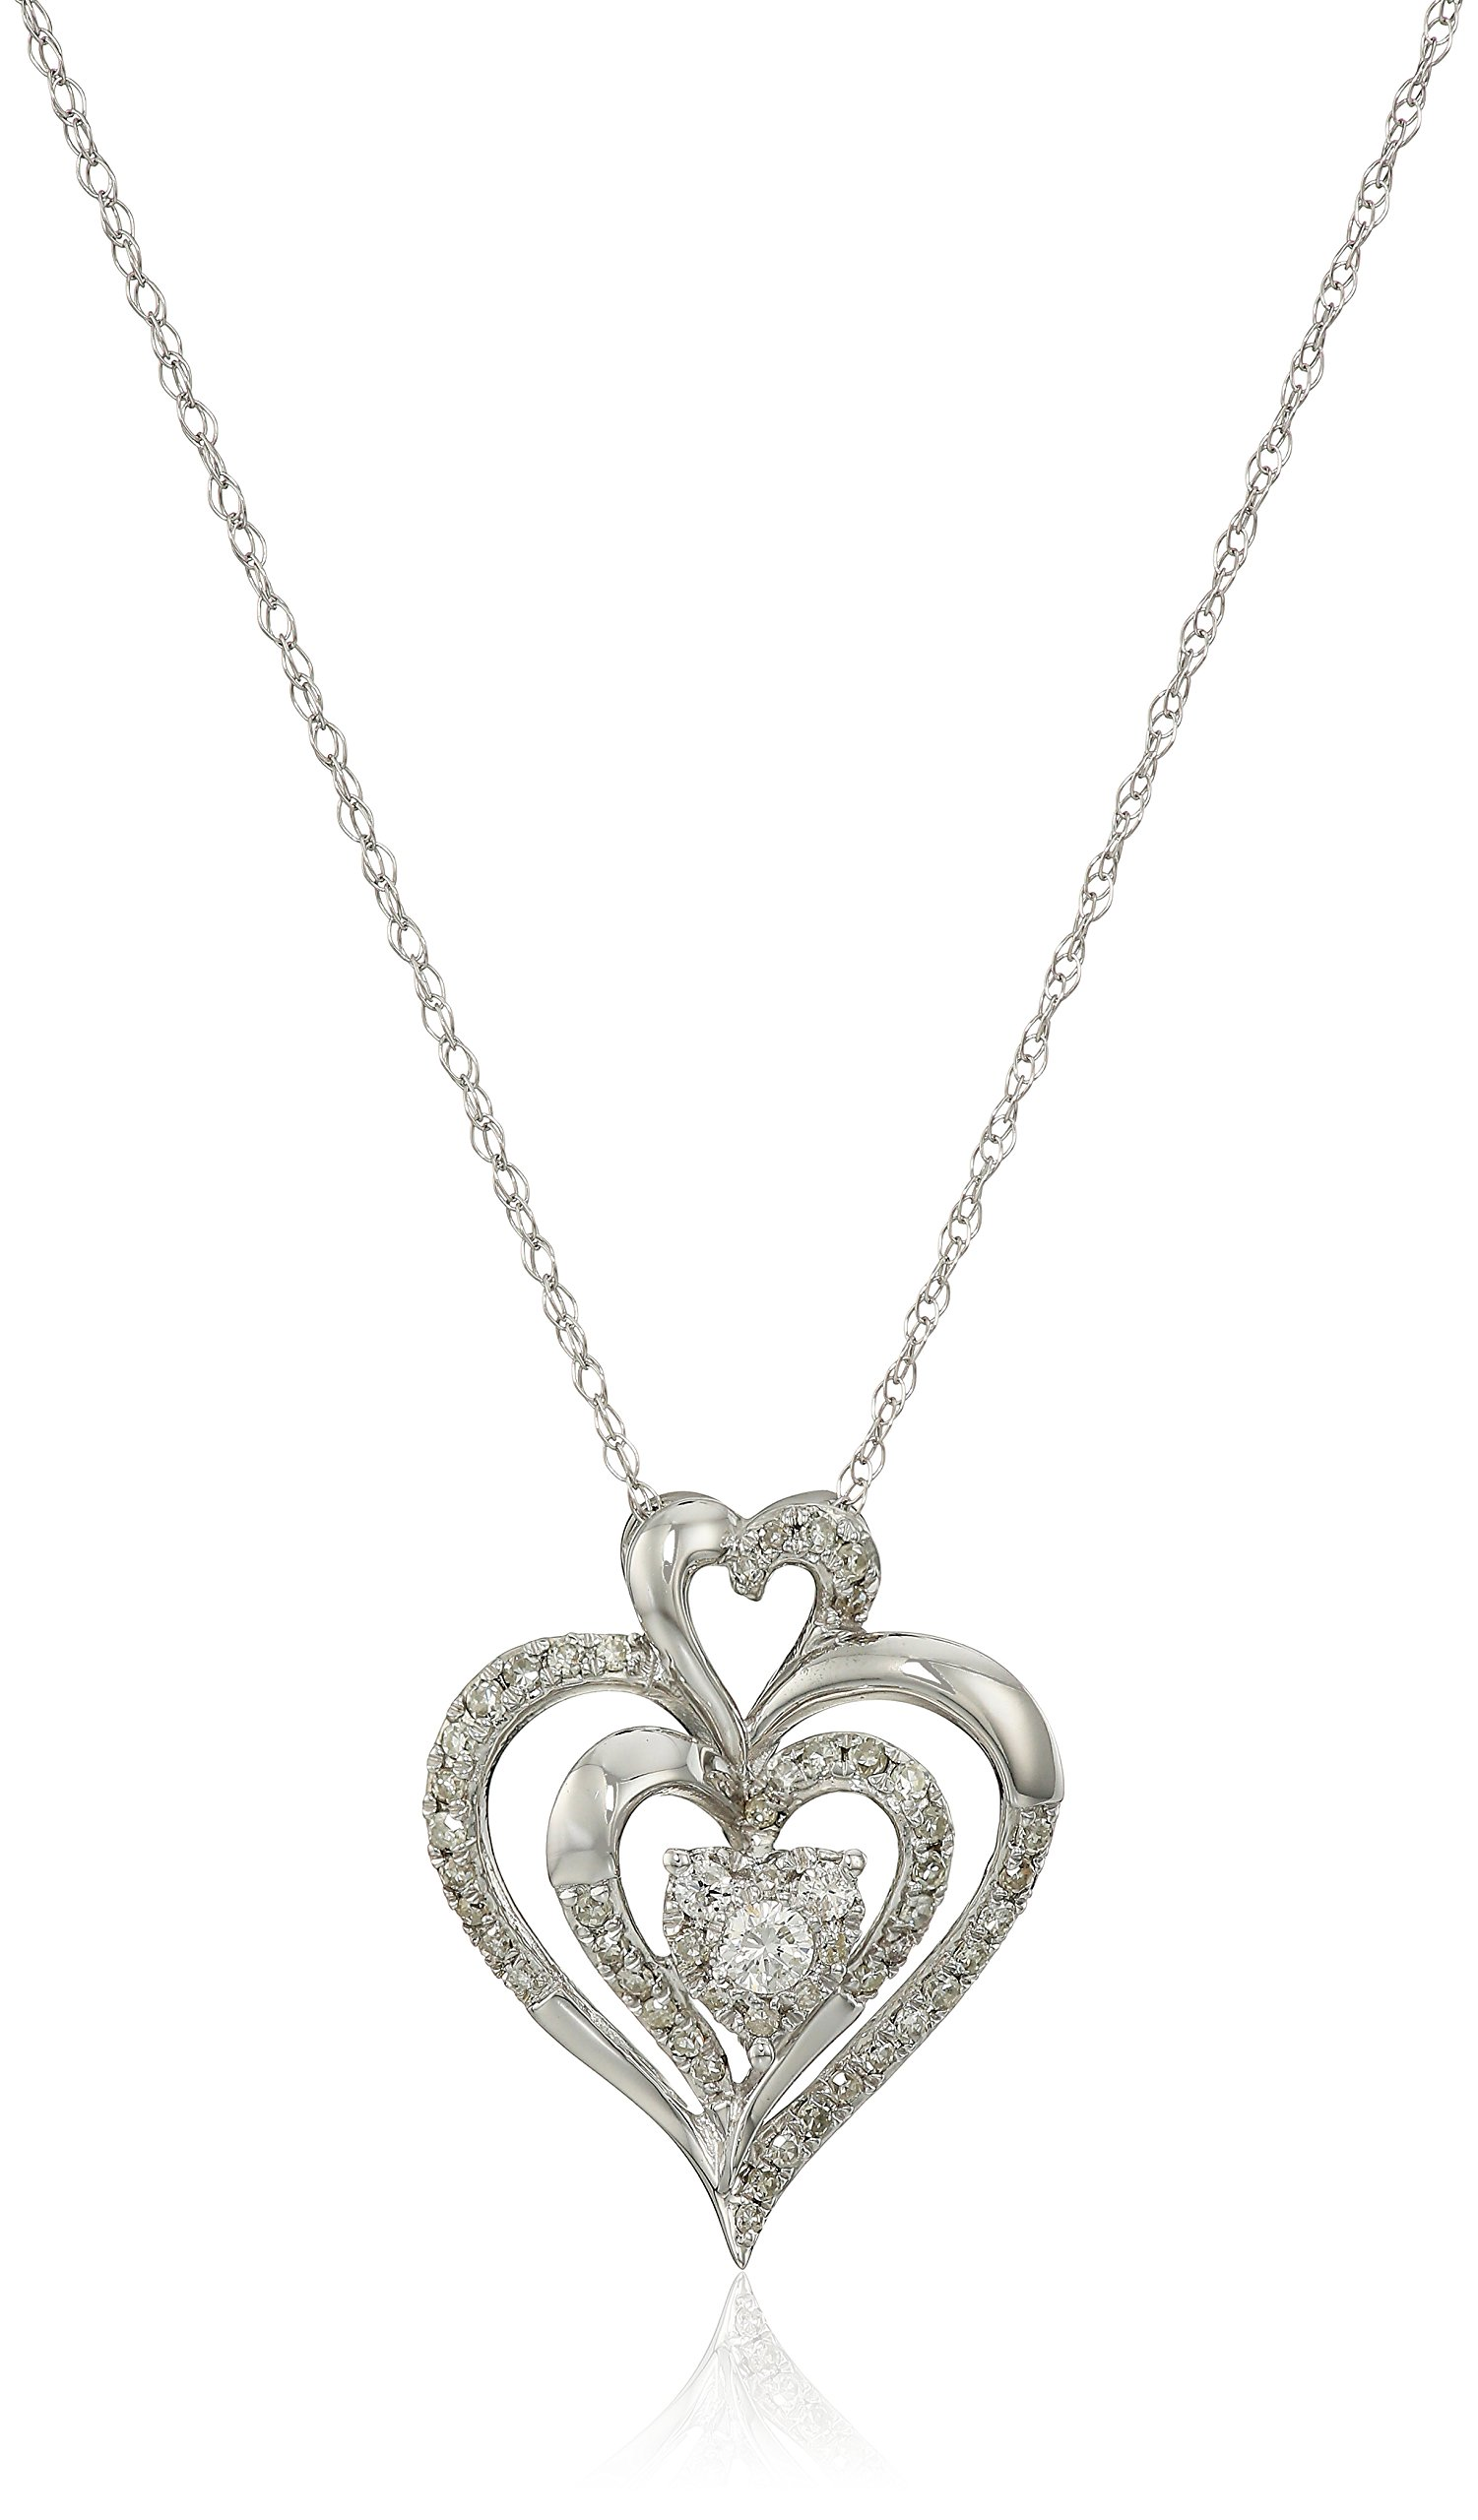 10k White Gold Diamond Heart Pendant Necklace (1/4 cttw, I-J Color, I2-I3 Clarity), 18''